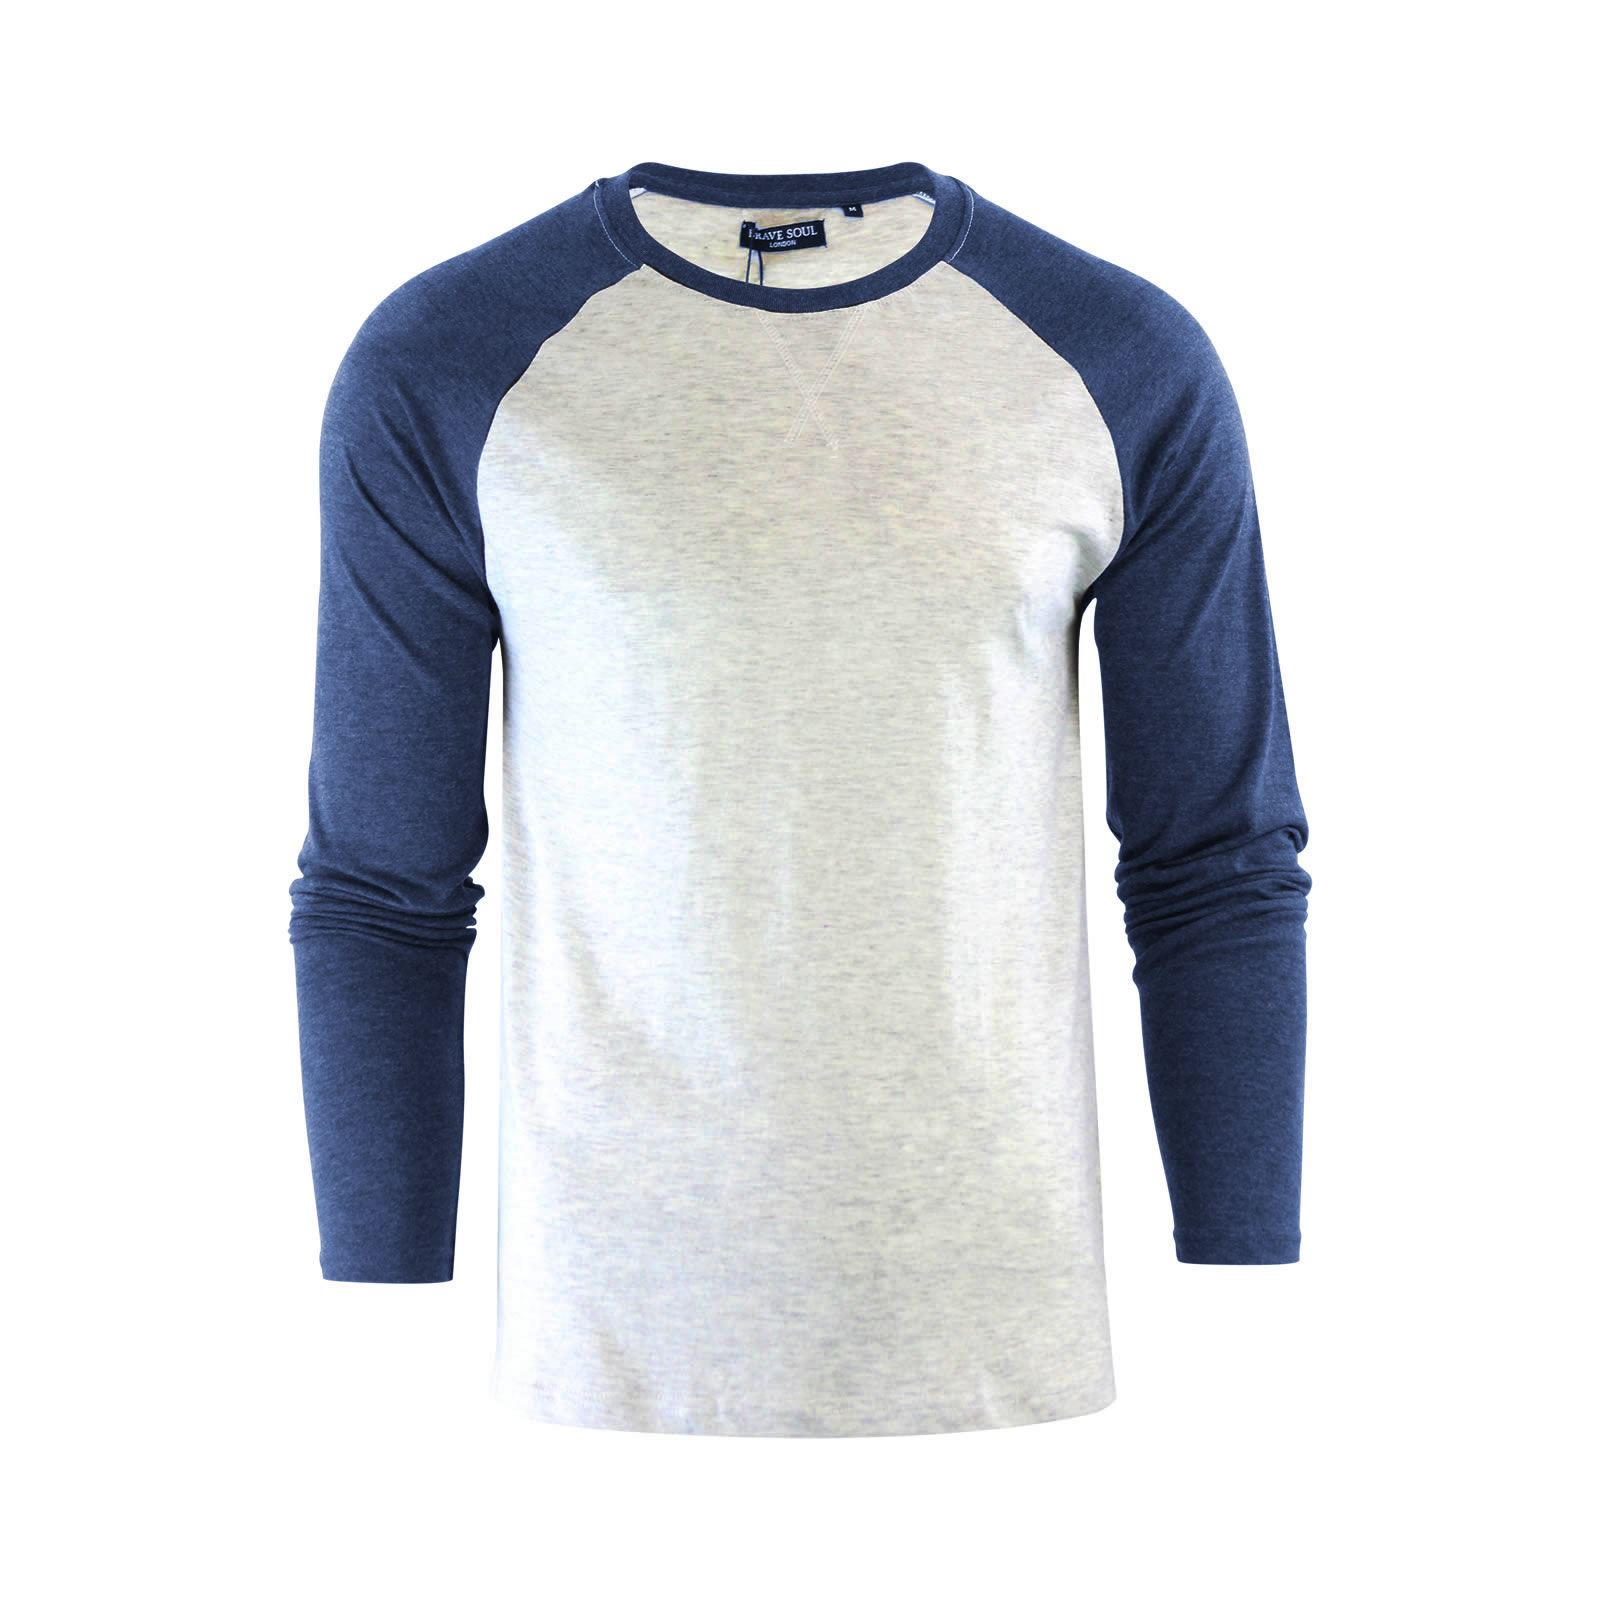 Brave-Soul-Prague-Mens-T-Shirt-by-Cotton-Long-Sleeved-Crew-Neck-Casual-Top thumbnail 49